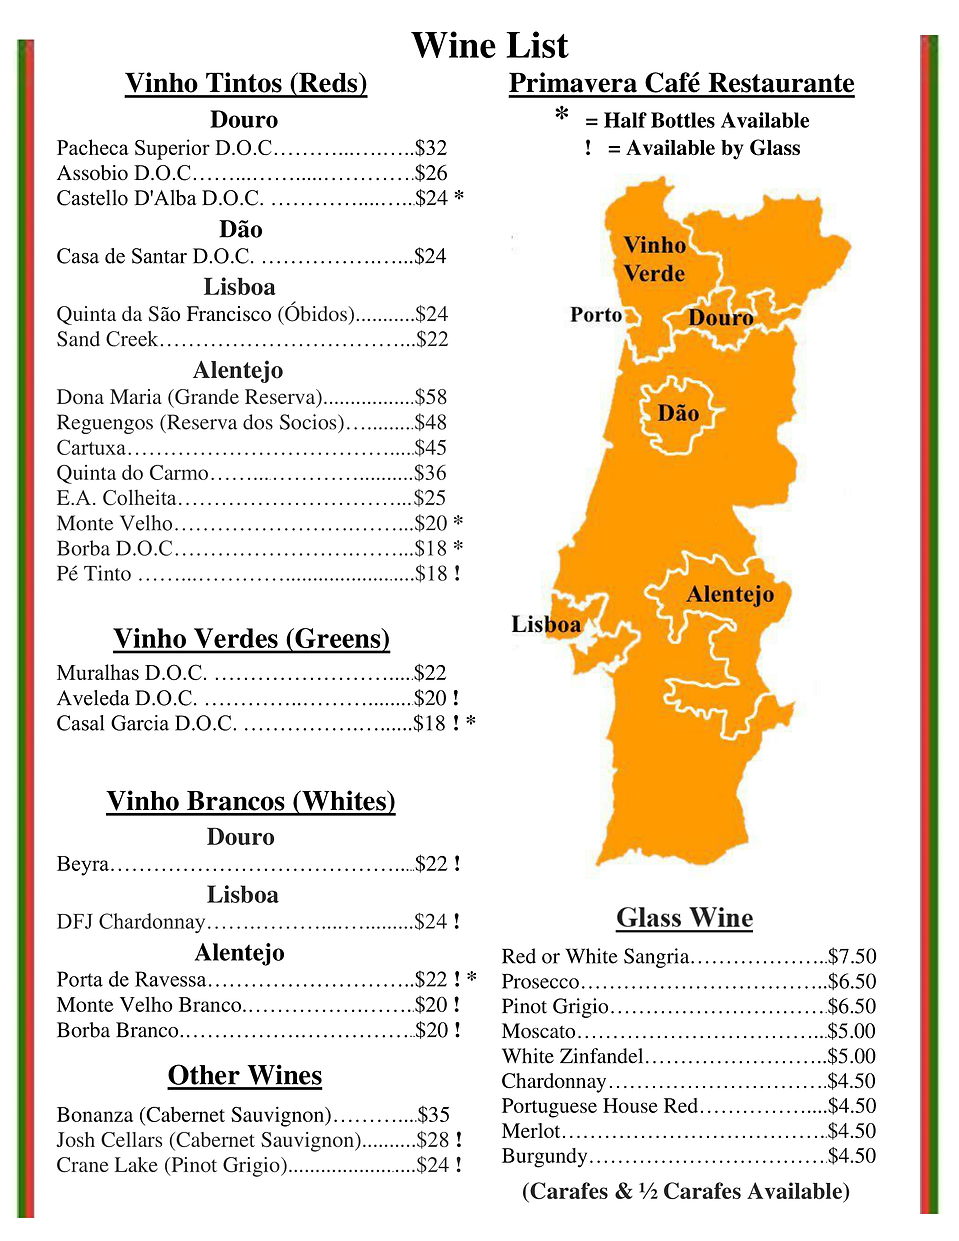 Wine List-updated 6-12-20 - Copy-1.png